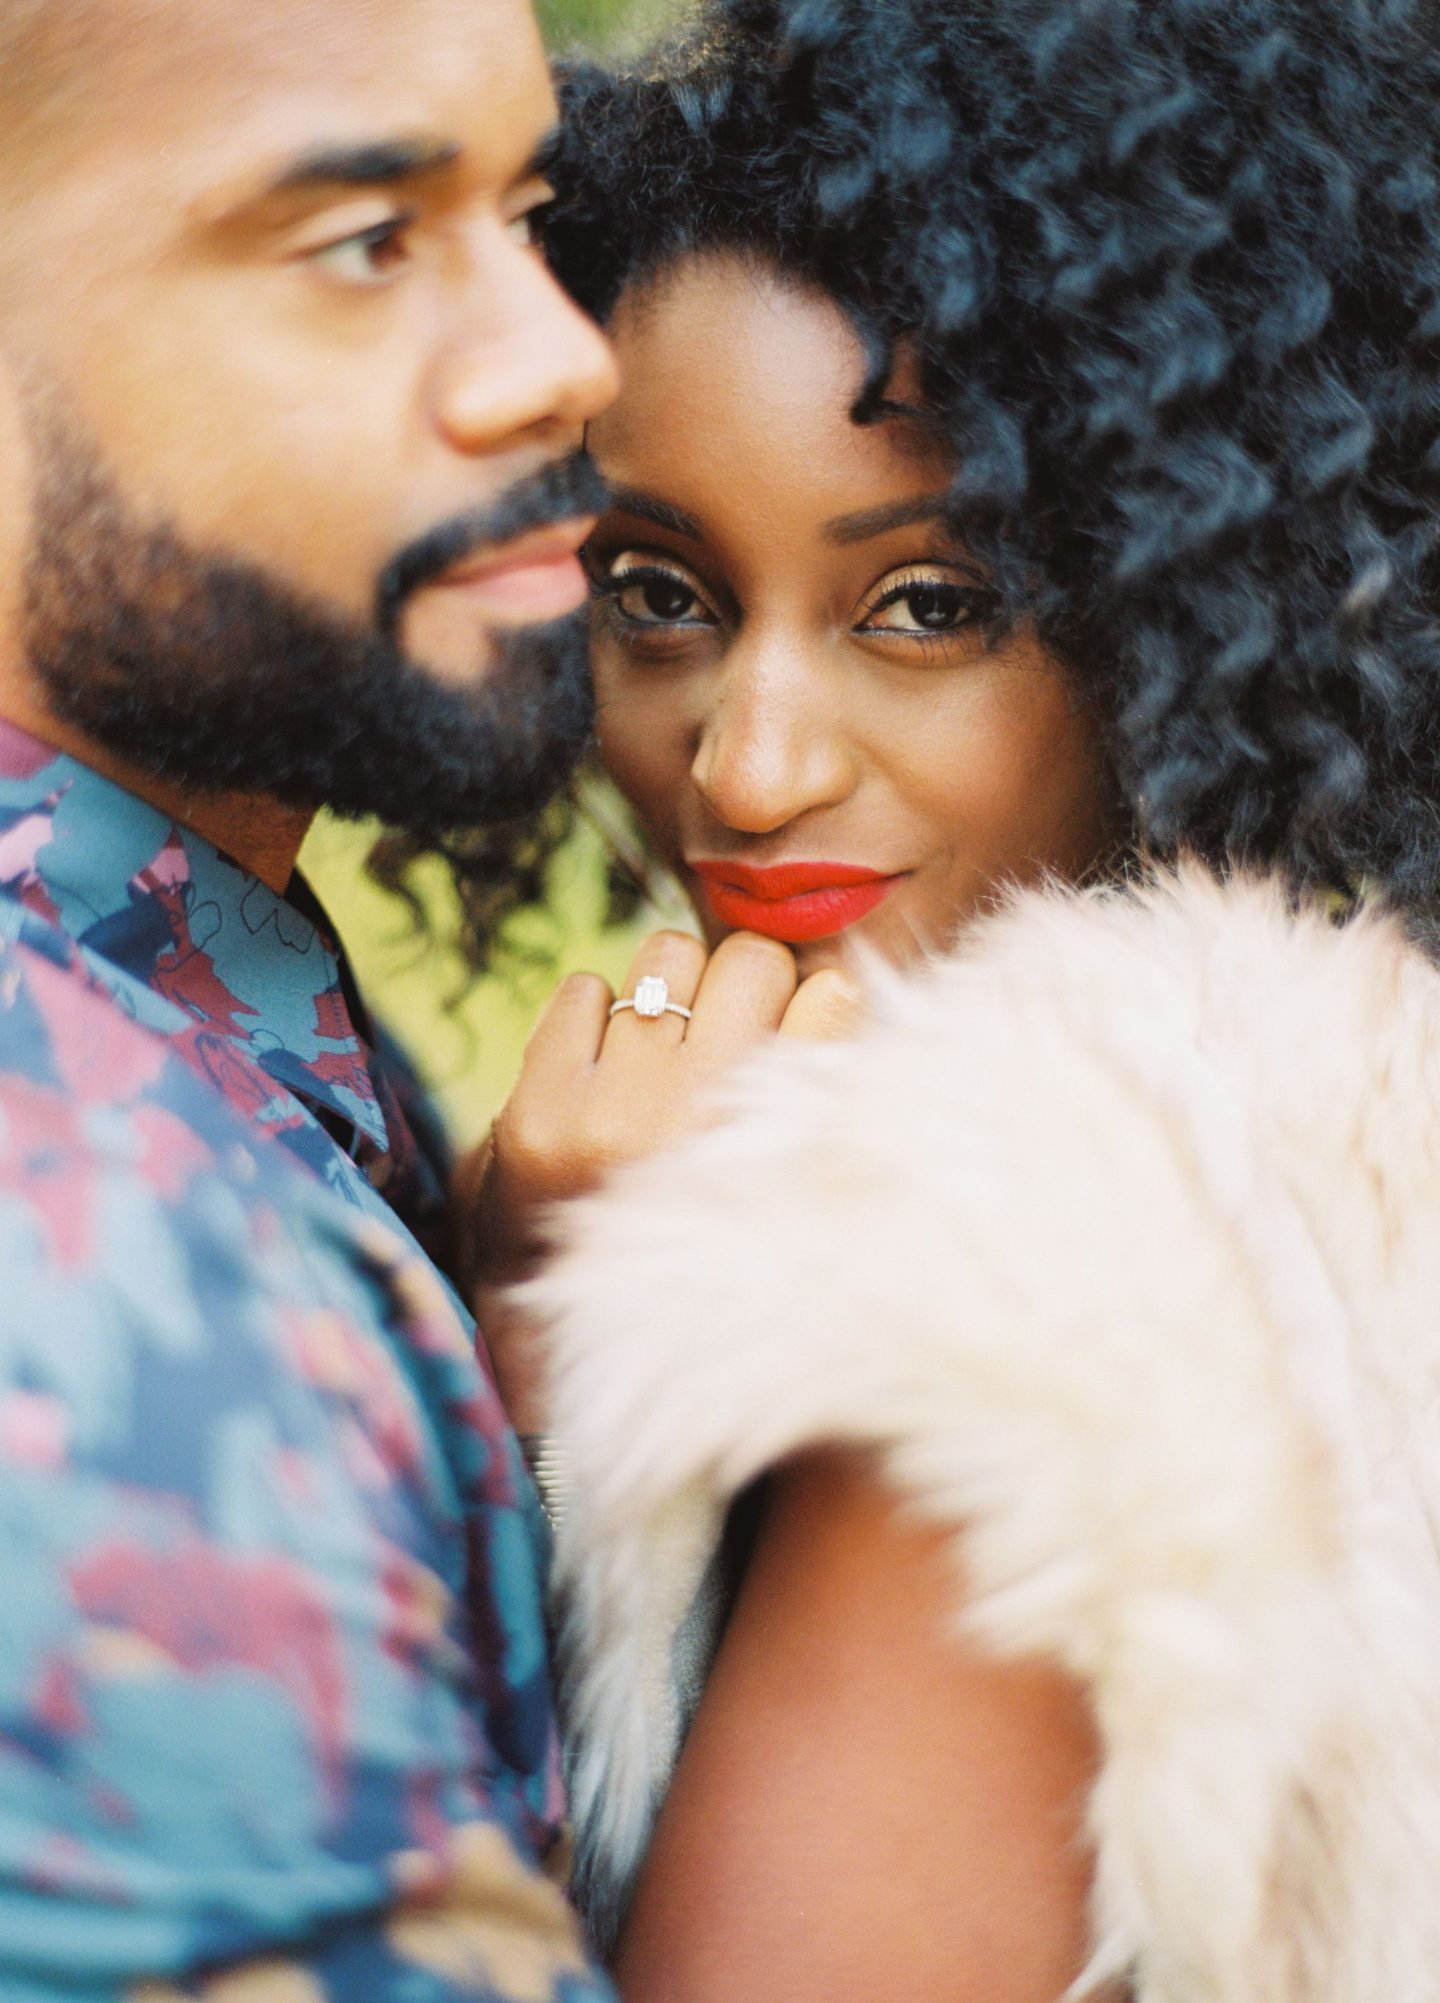 The Best Advice I've Received as an Engaged Woman